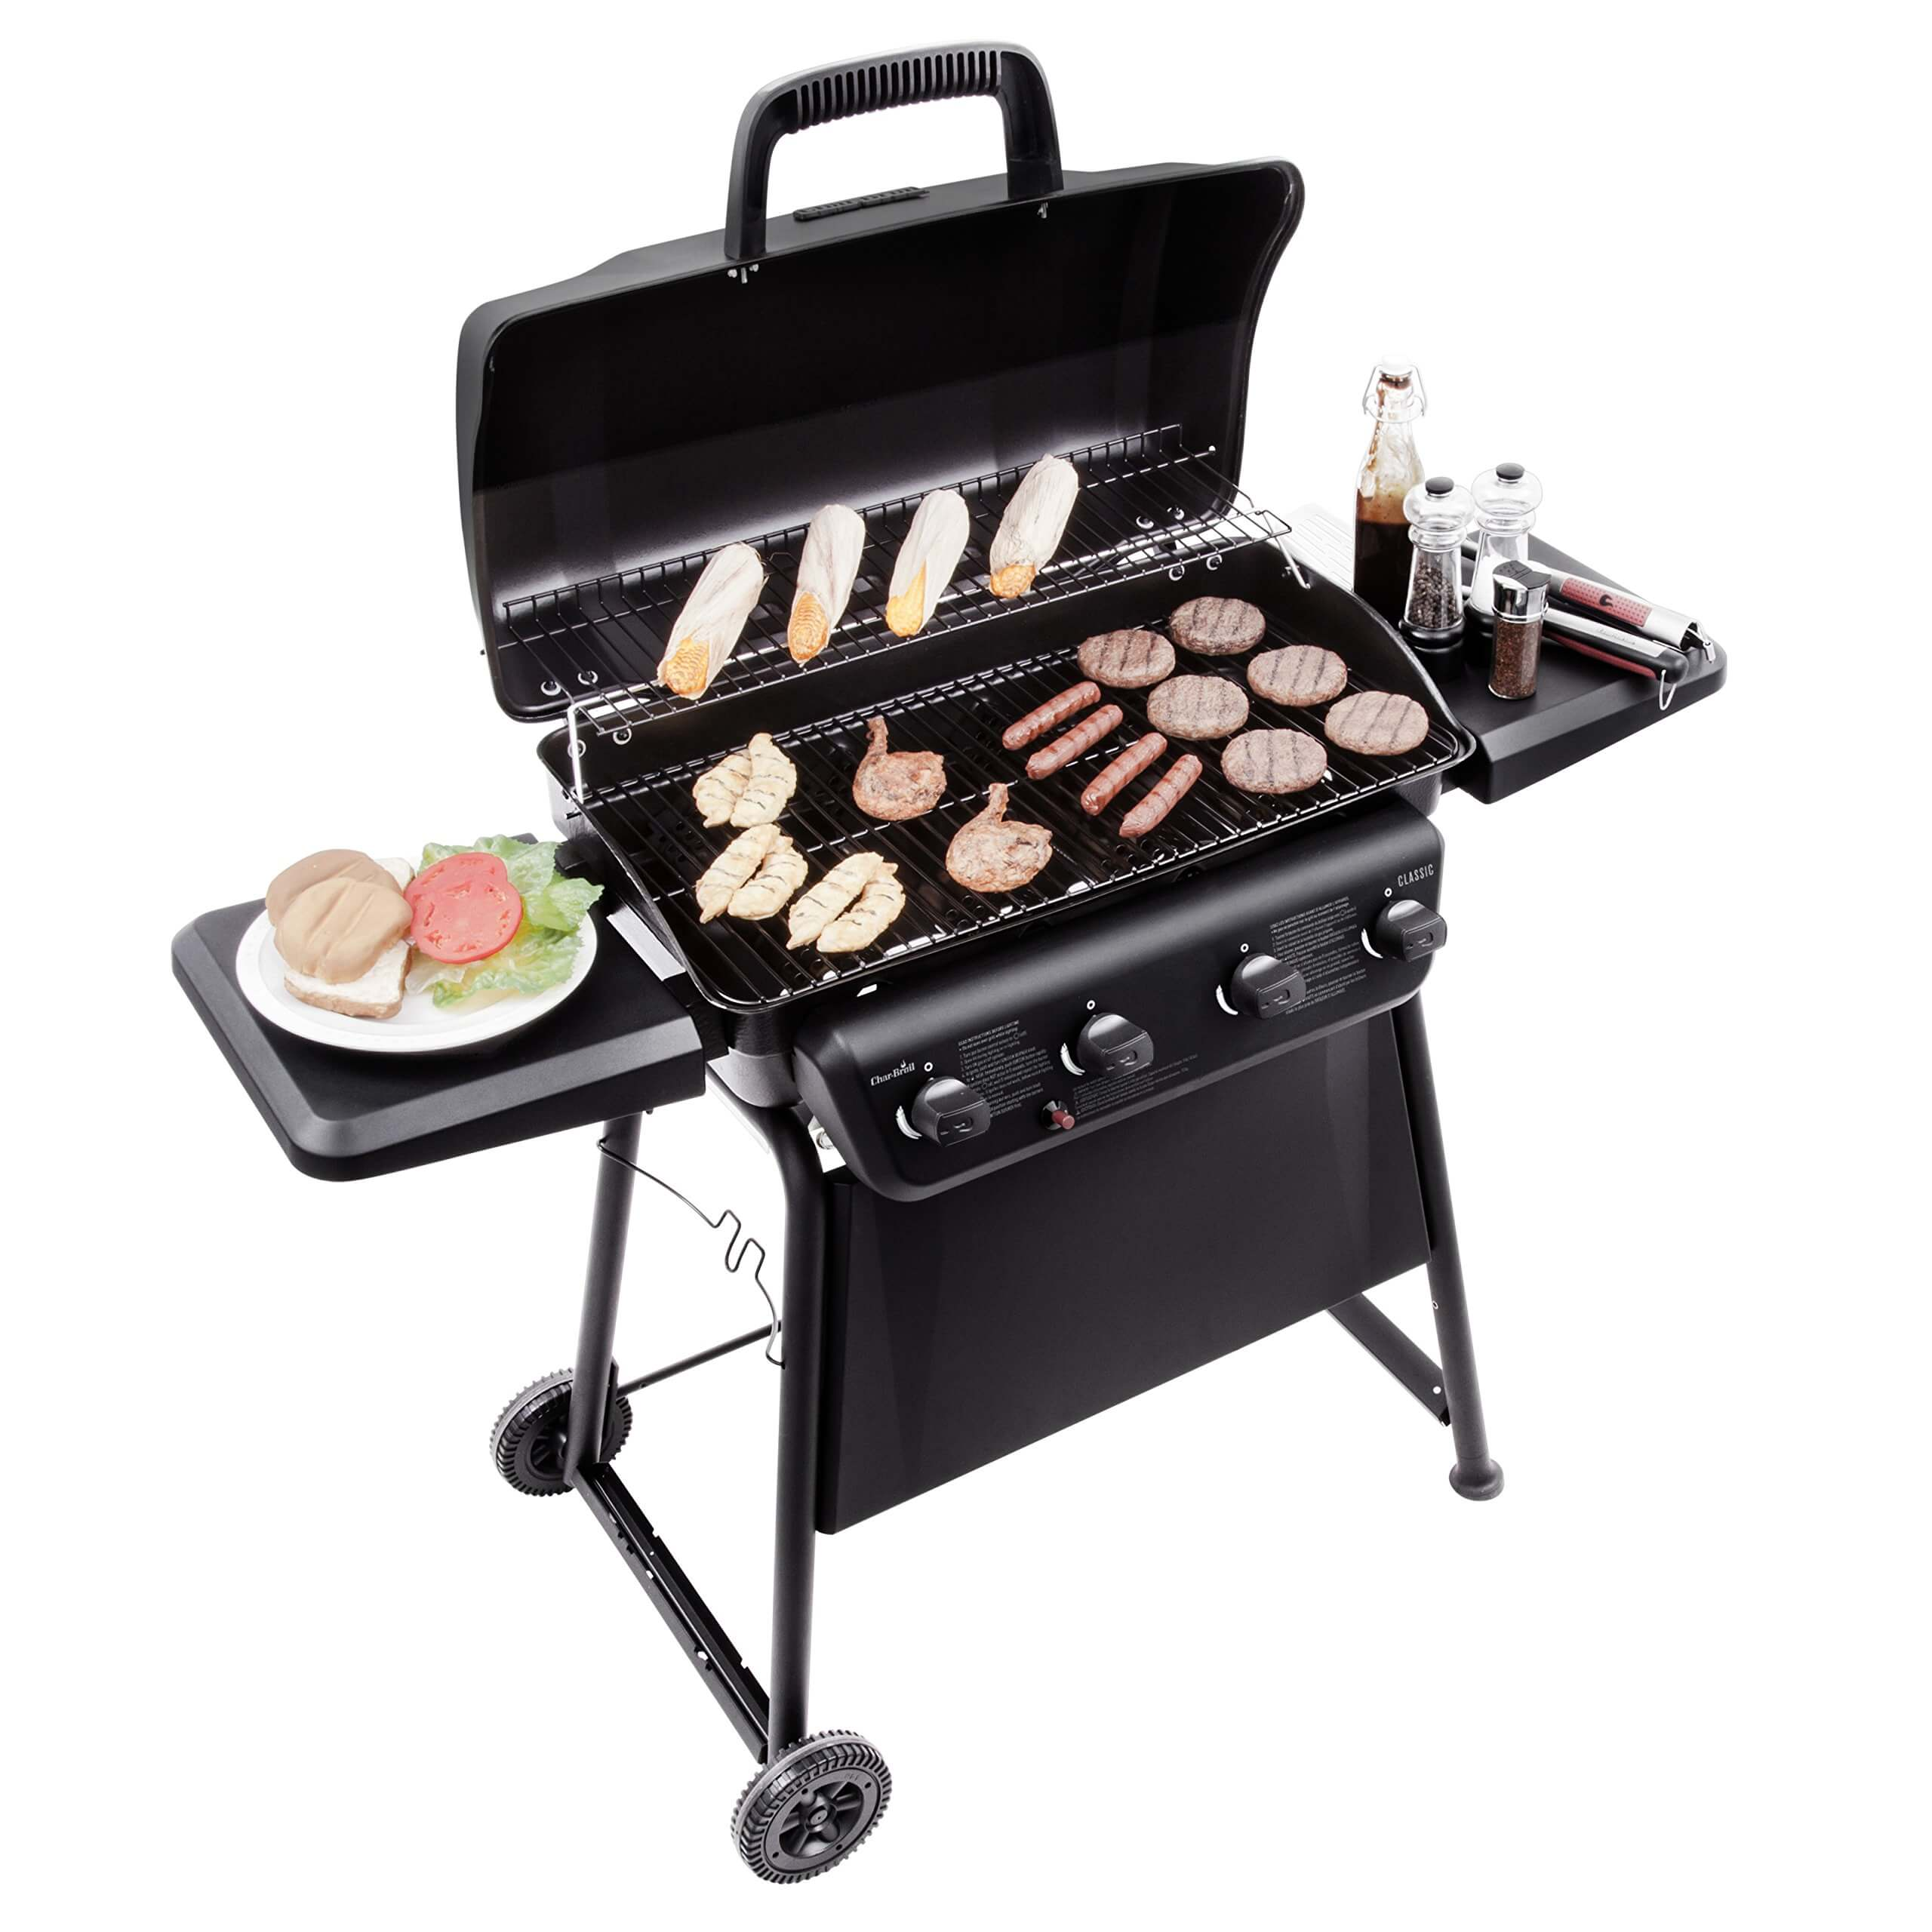 Char-Broil Classic 405 4 – Burner Liquid propane Grill, best propane grills 2020, best bbq grills 2020, grill reviews 2020, best gas grill for the money, char-broil performance 475 gas grill, best gas grills under $300